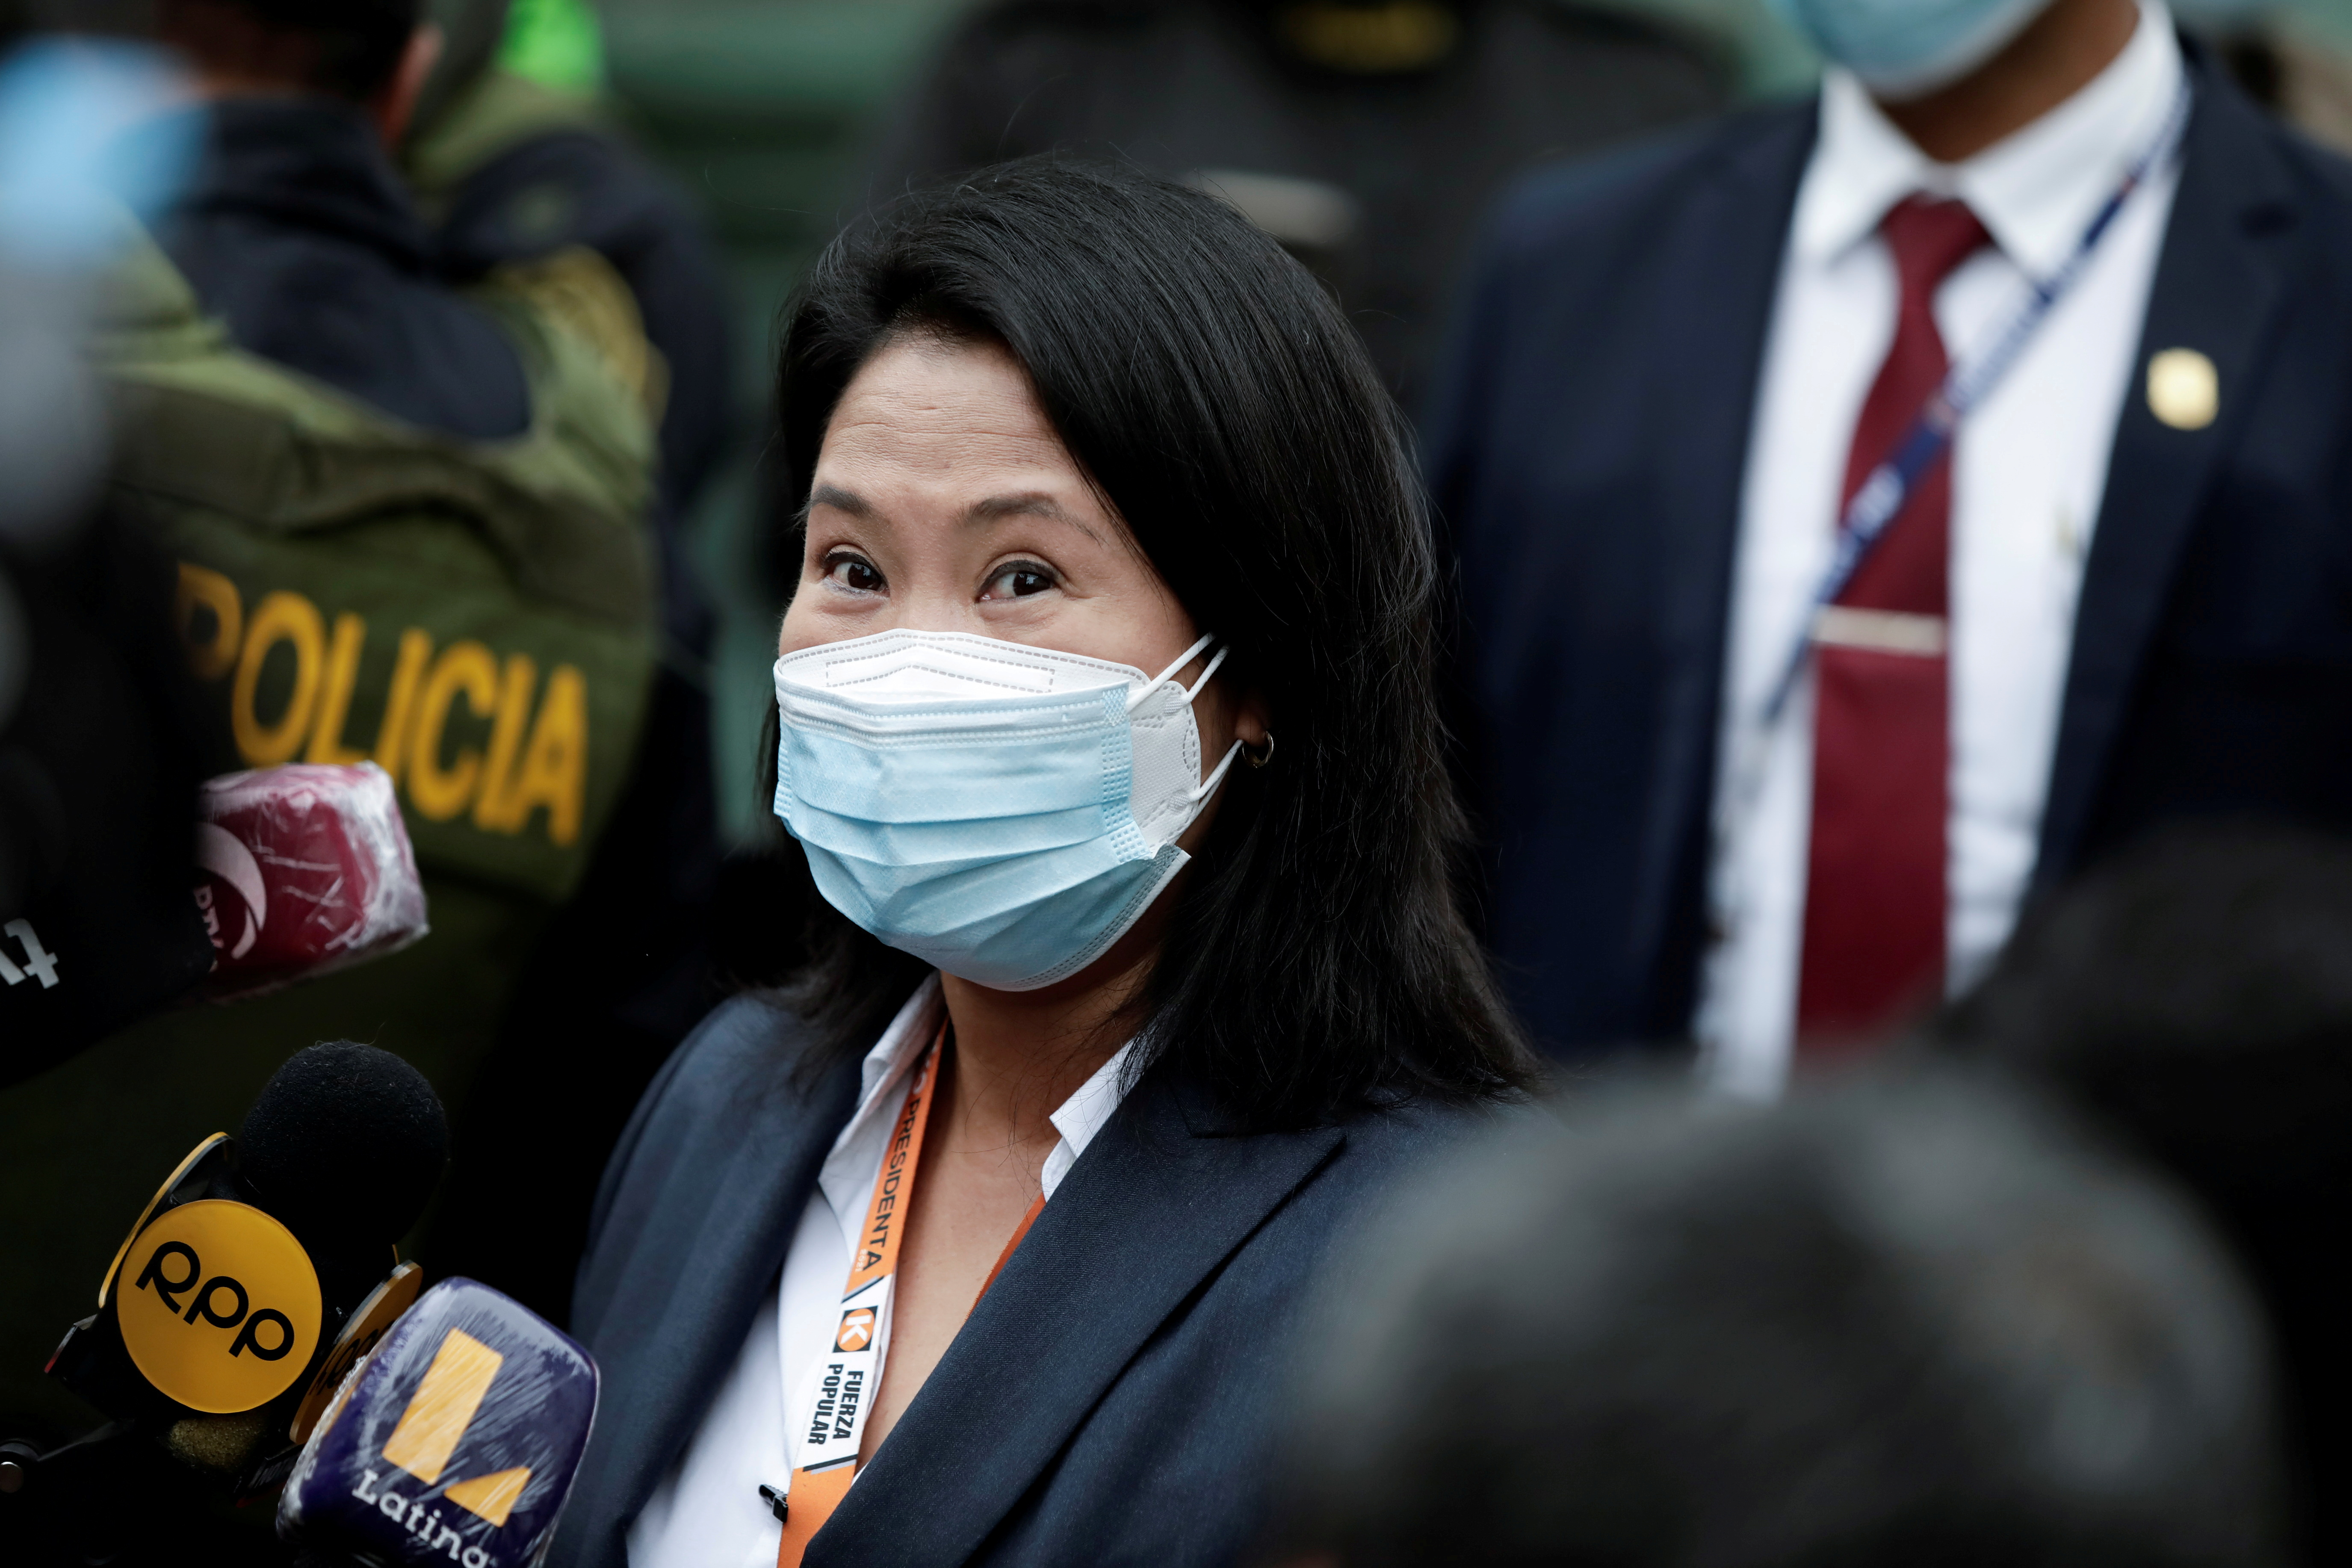 Peru's presidential candidate Keiko Fujimori talks with journalists as she arrives at the National Court of Tacna Avenue in Lima, Peru, June 21, 2021. REUTERS/Angela Ponce/File Photo